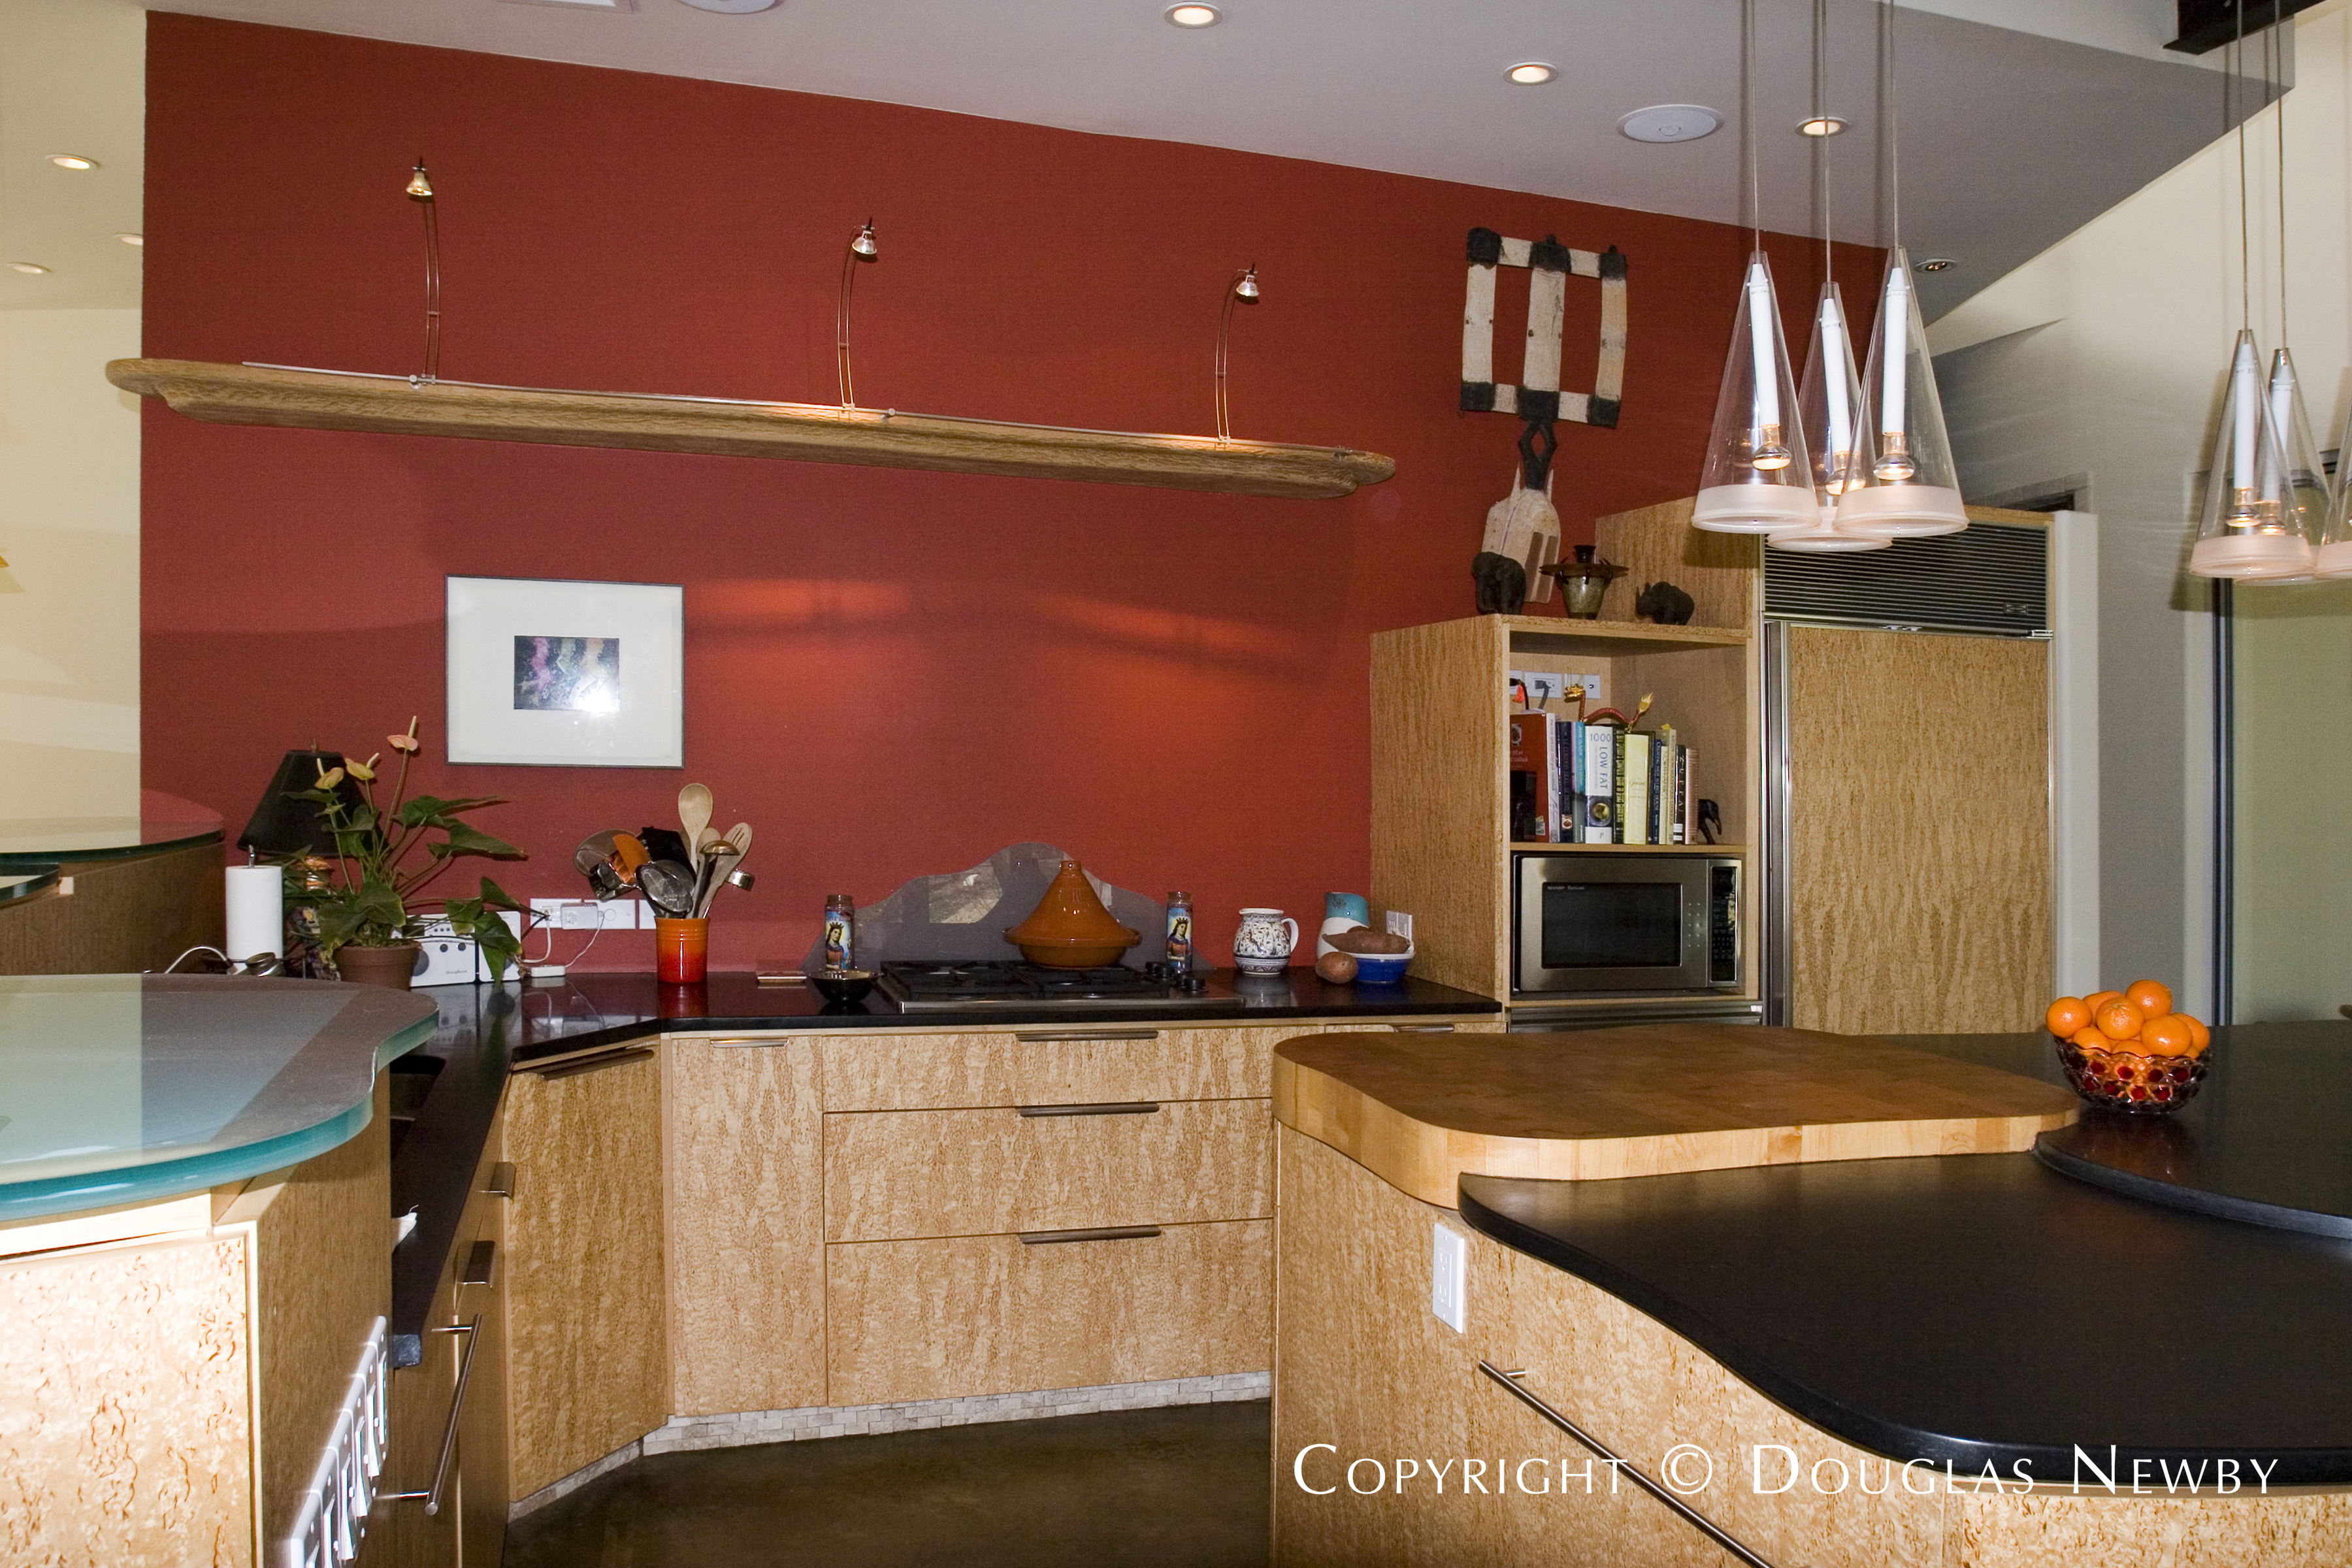 Architect Gary Gene Olp Designed Modern Home in Bluffview Area